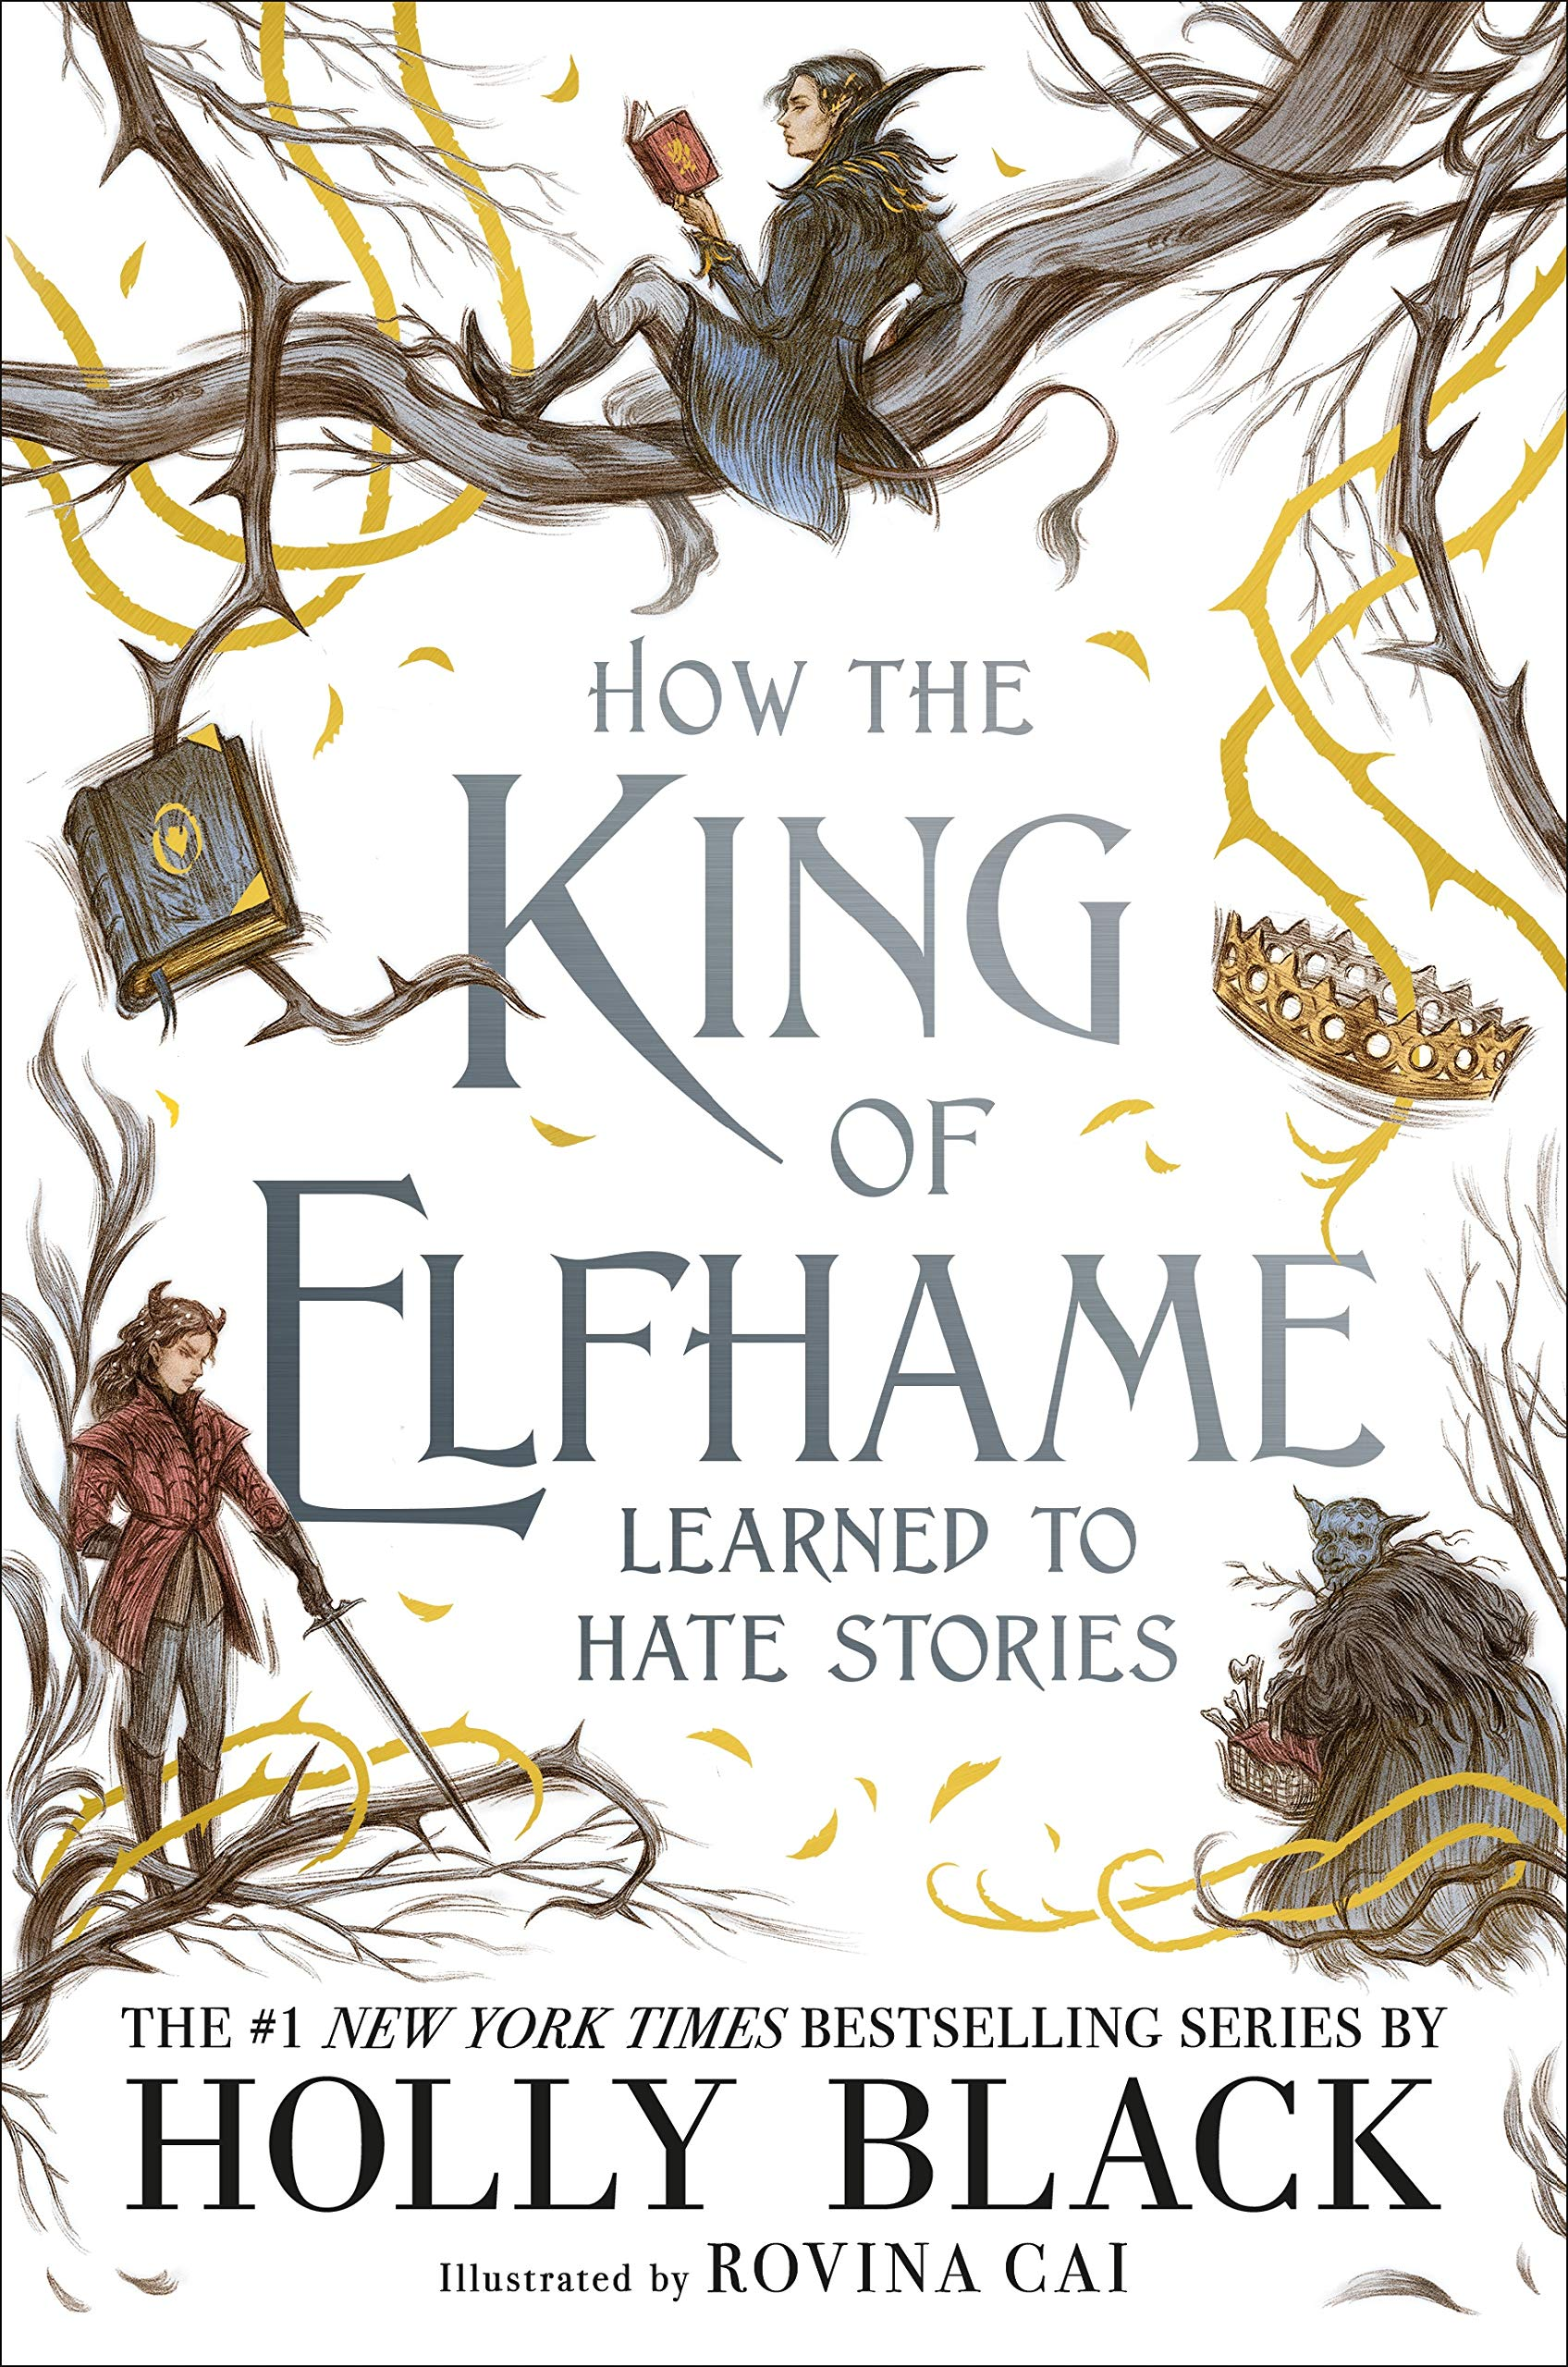 How the King of Elfhame Learned to Hate Stories (The Folk of the Air  series) Perfect Christmas gift for fans of Fantasy Fiction: Amazon.co.uk:  Black, Holly, Cai, Rovina: 9781471409981: Books